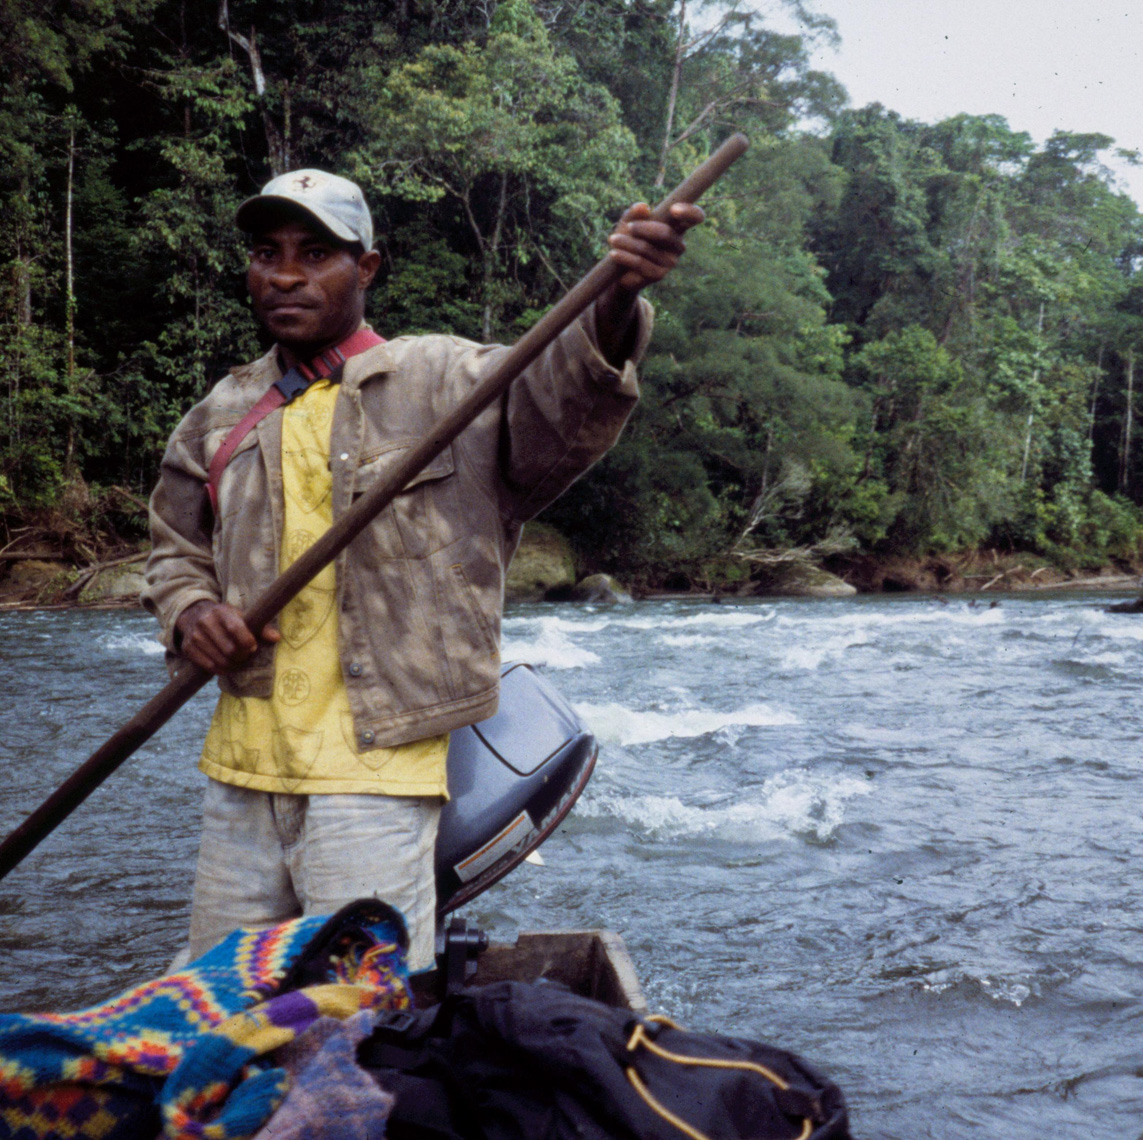 Up the Karawari River Rapids Looking for Masterpieces of New Guinea Tribal Art